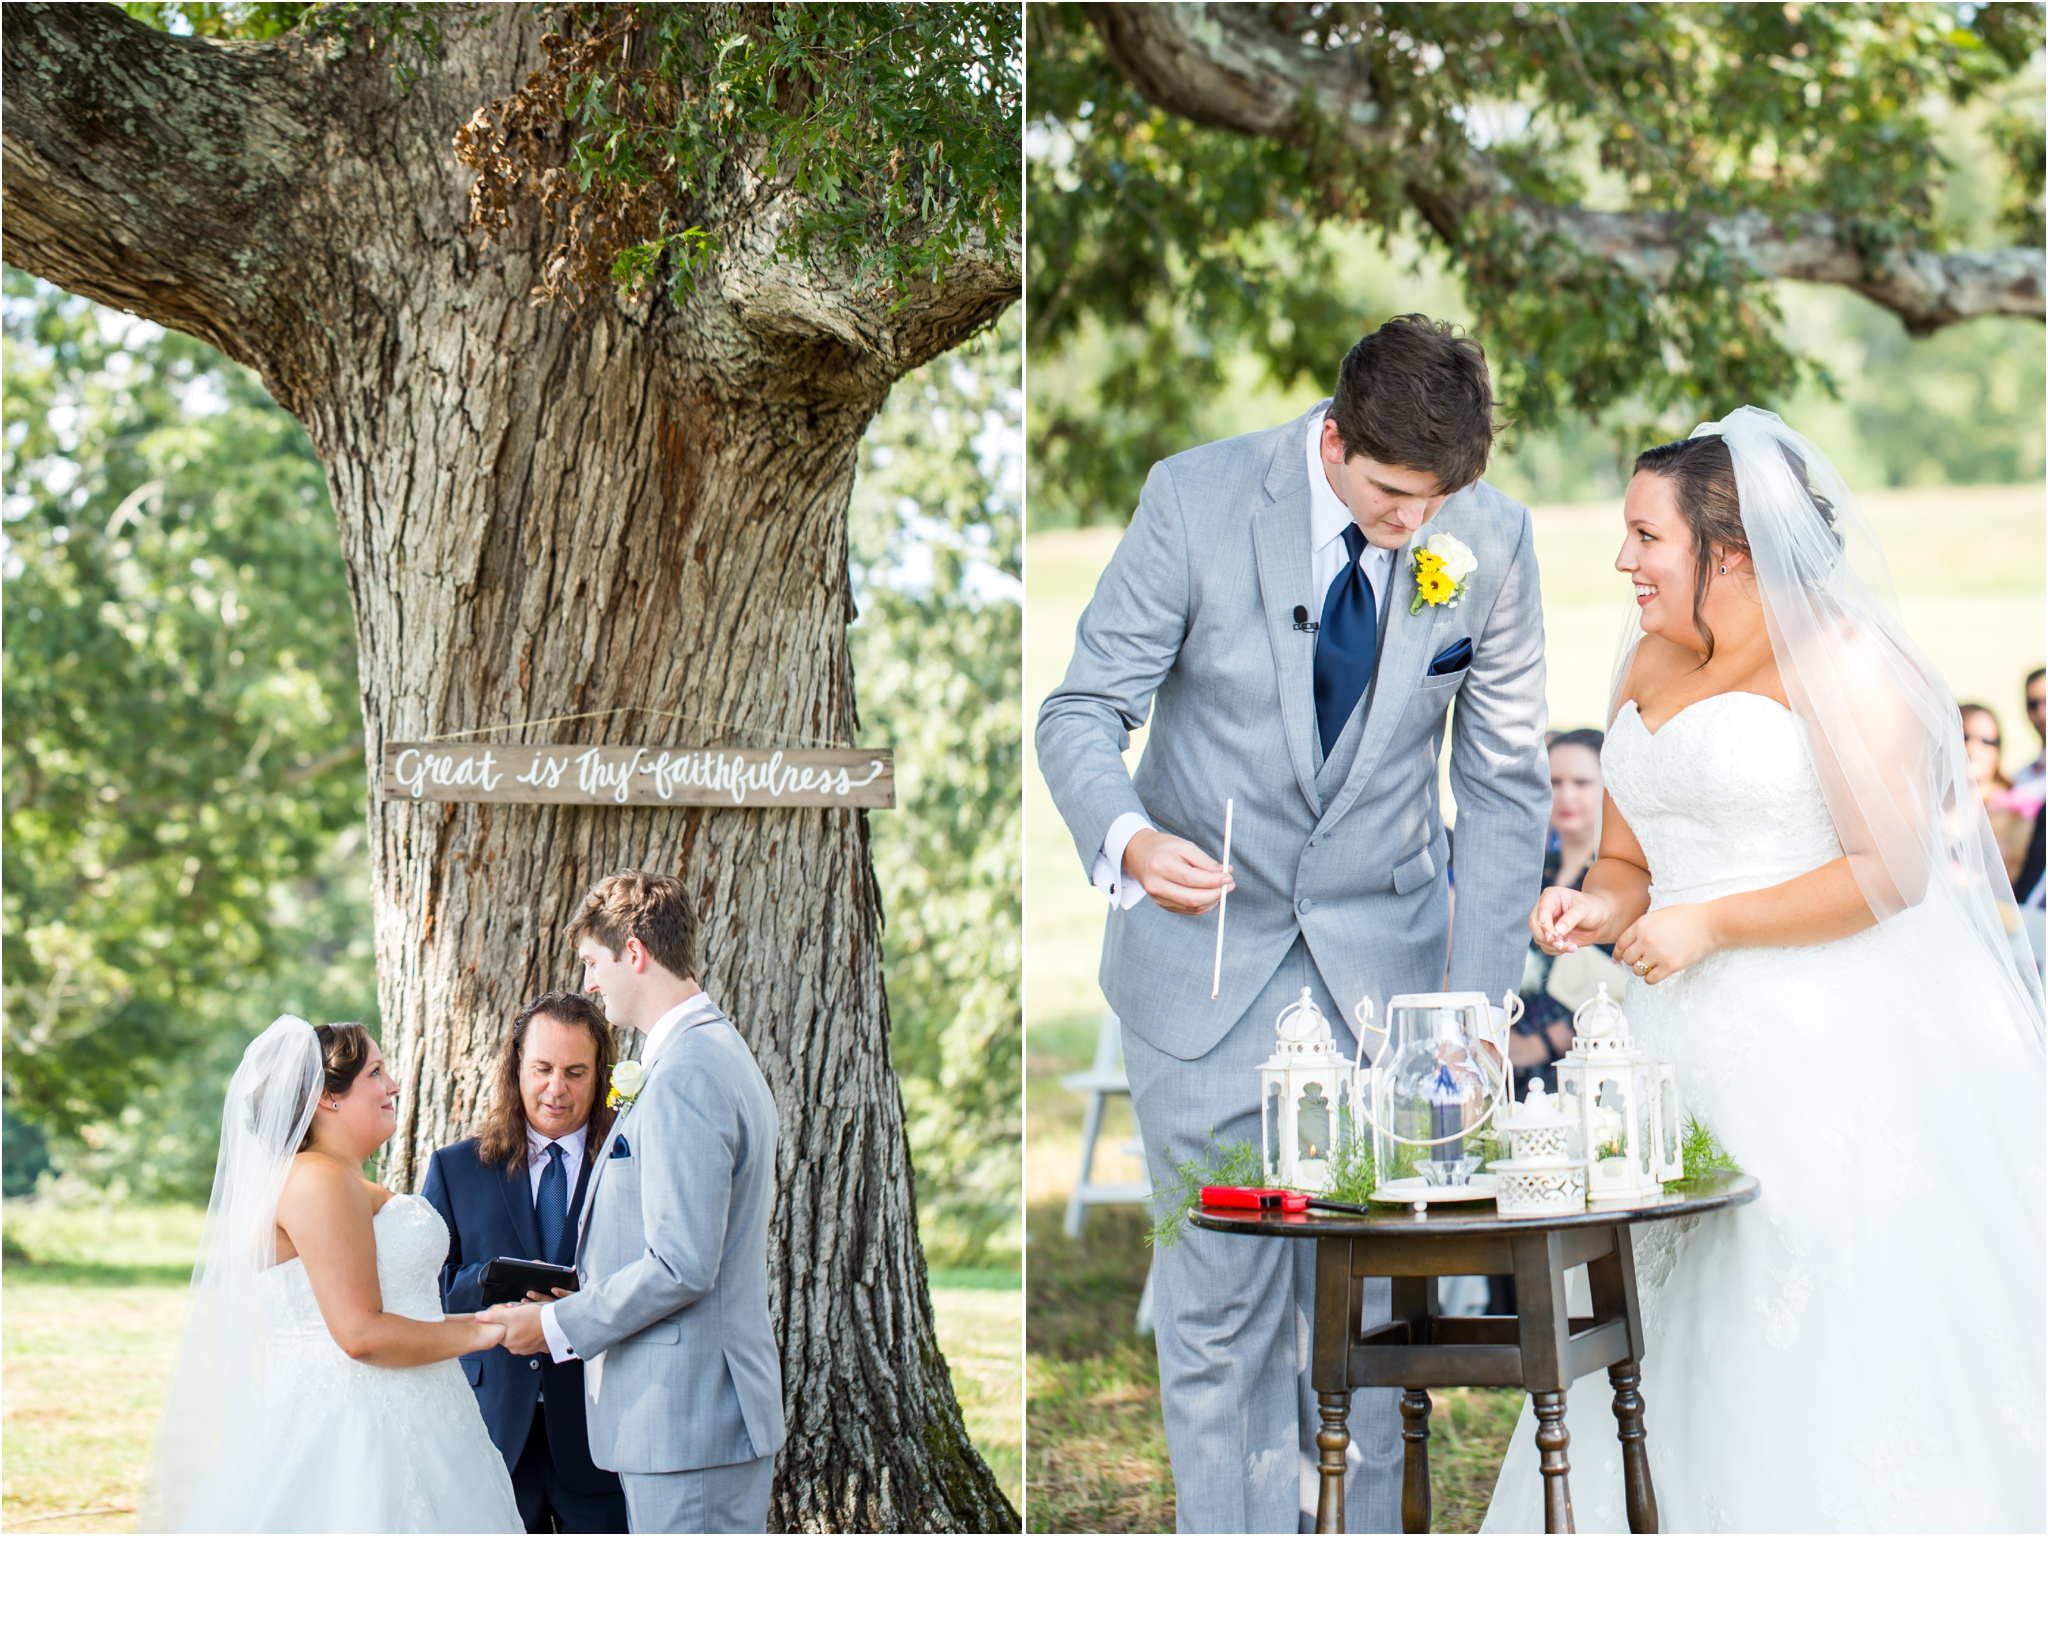 Rainey_Gregg_Photography_St._Simons_Island_Georgia_California_Wedding_Portrait_Photography_0321.jpg